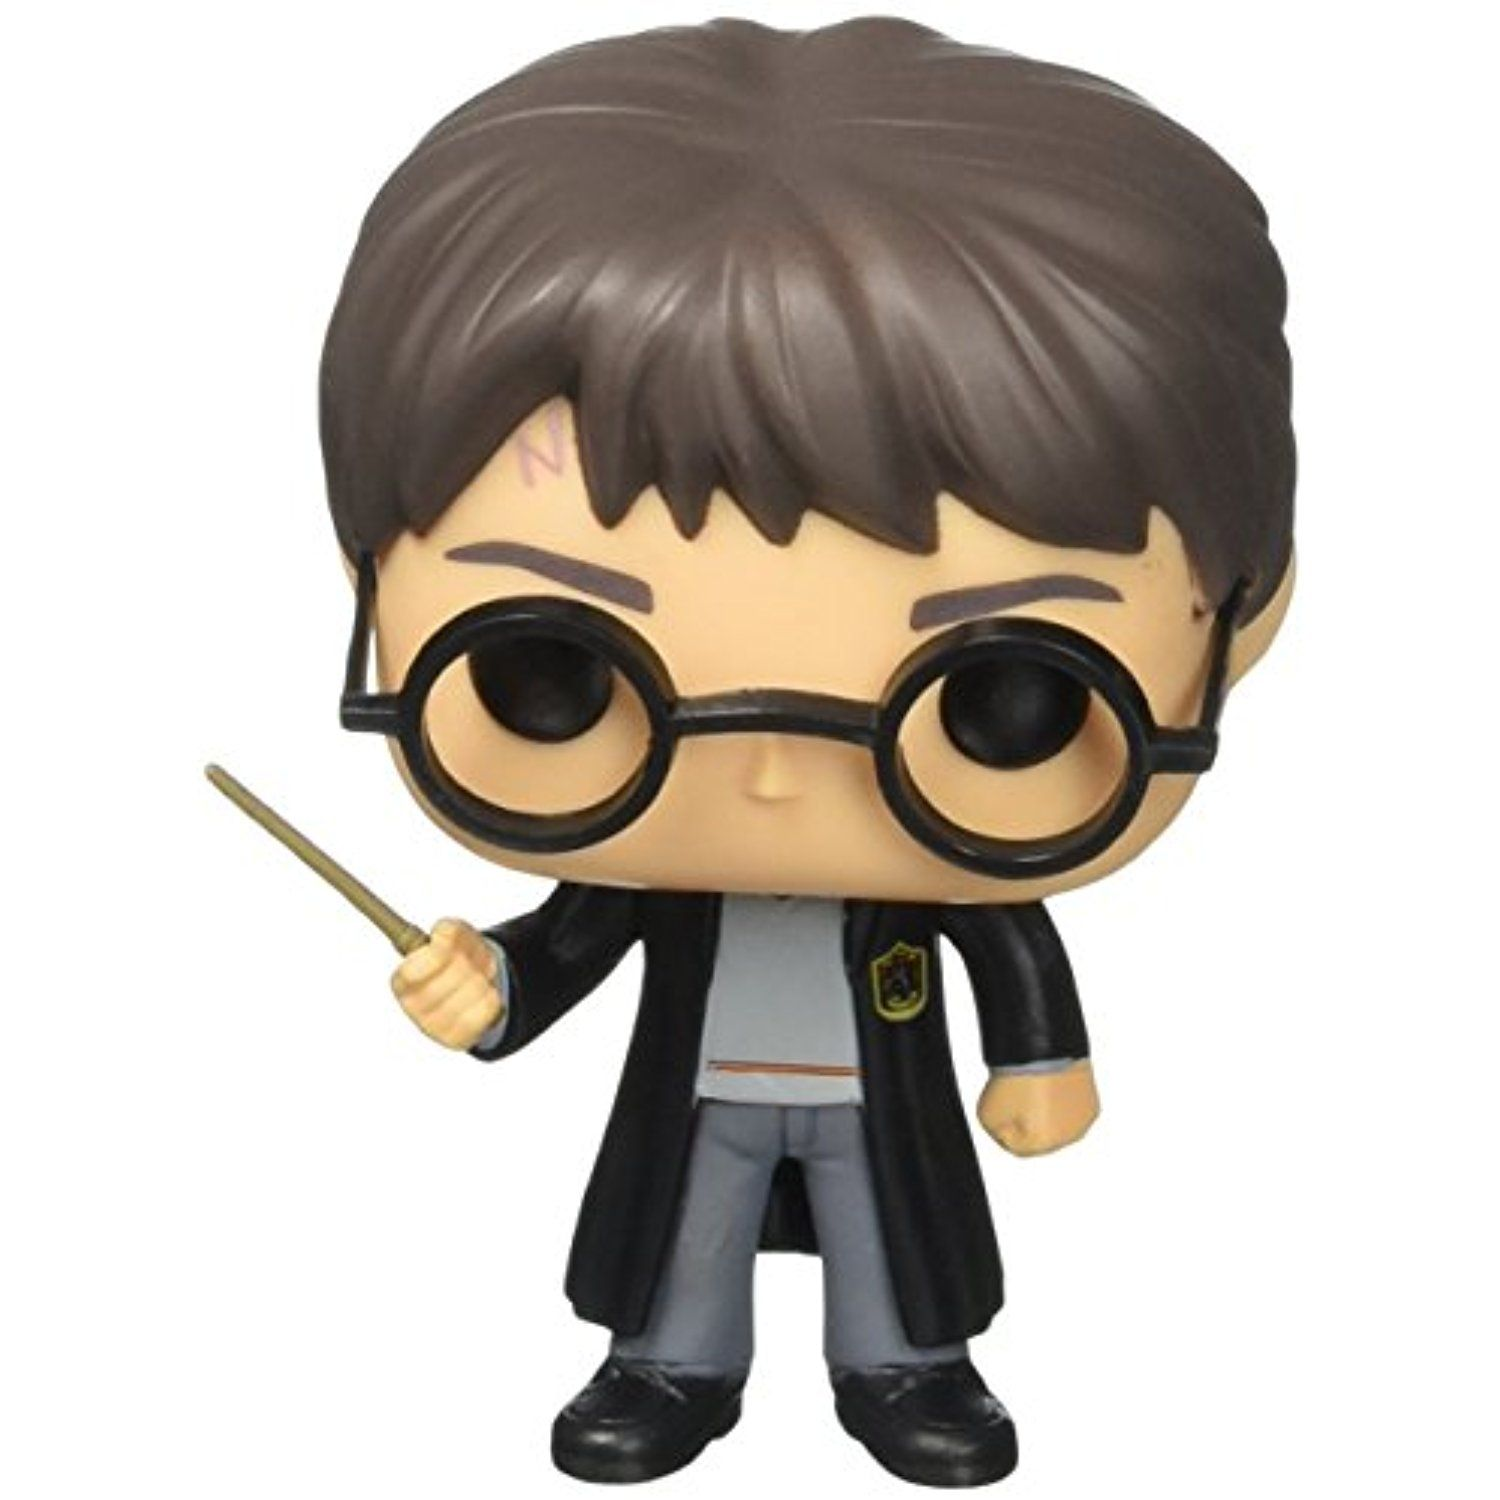 Movies 6570 Accessory Toys /& Games Miscellaneous Sirius Black Funko Pop Harry Potter Action Figure Funko POP Movies